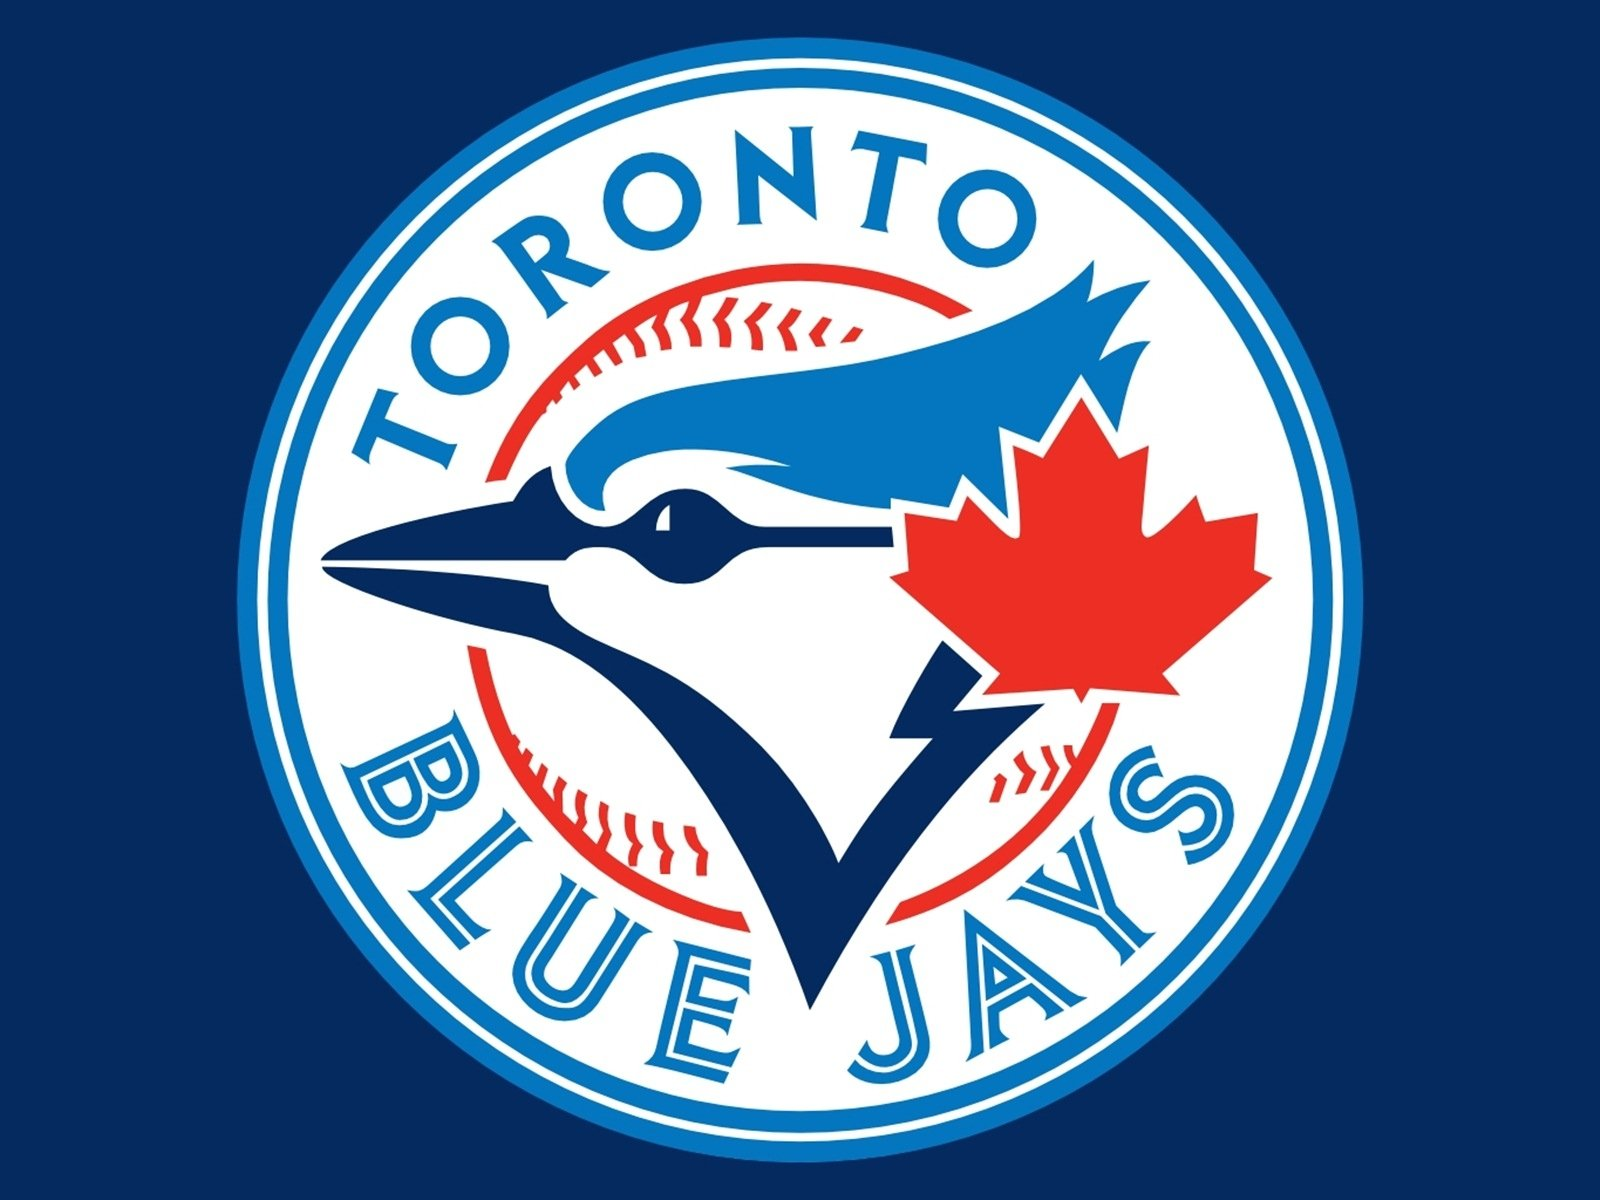 TORONTO BLUE JAYS mlb baseball 31 wallpaper background 1600x1200